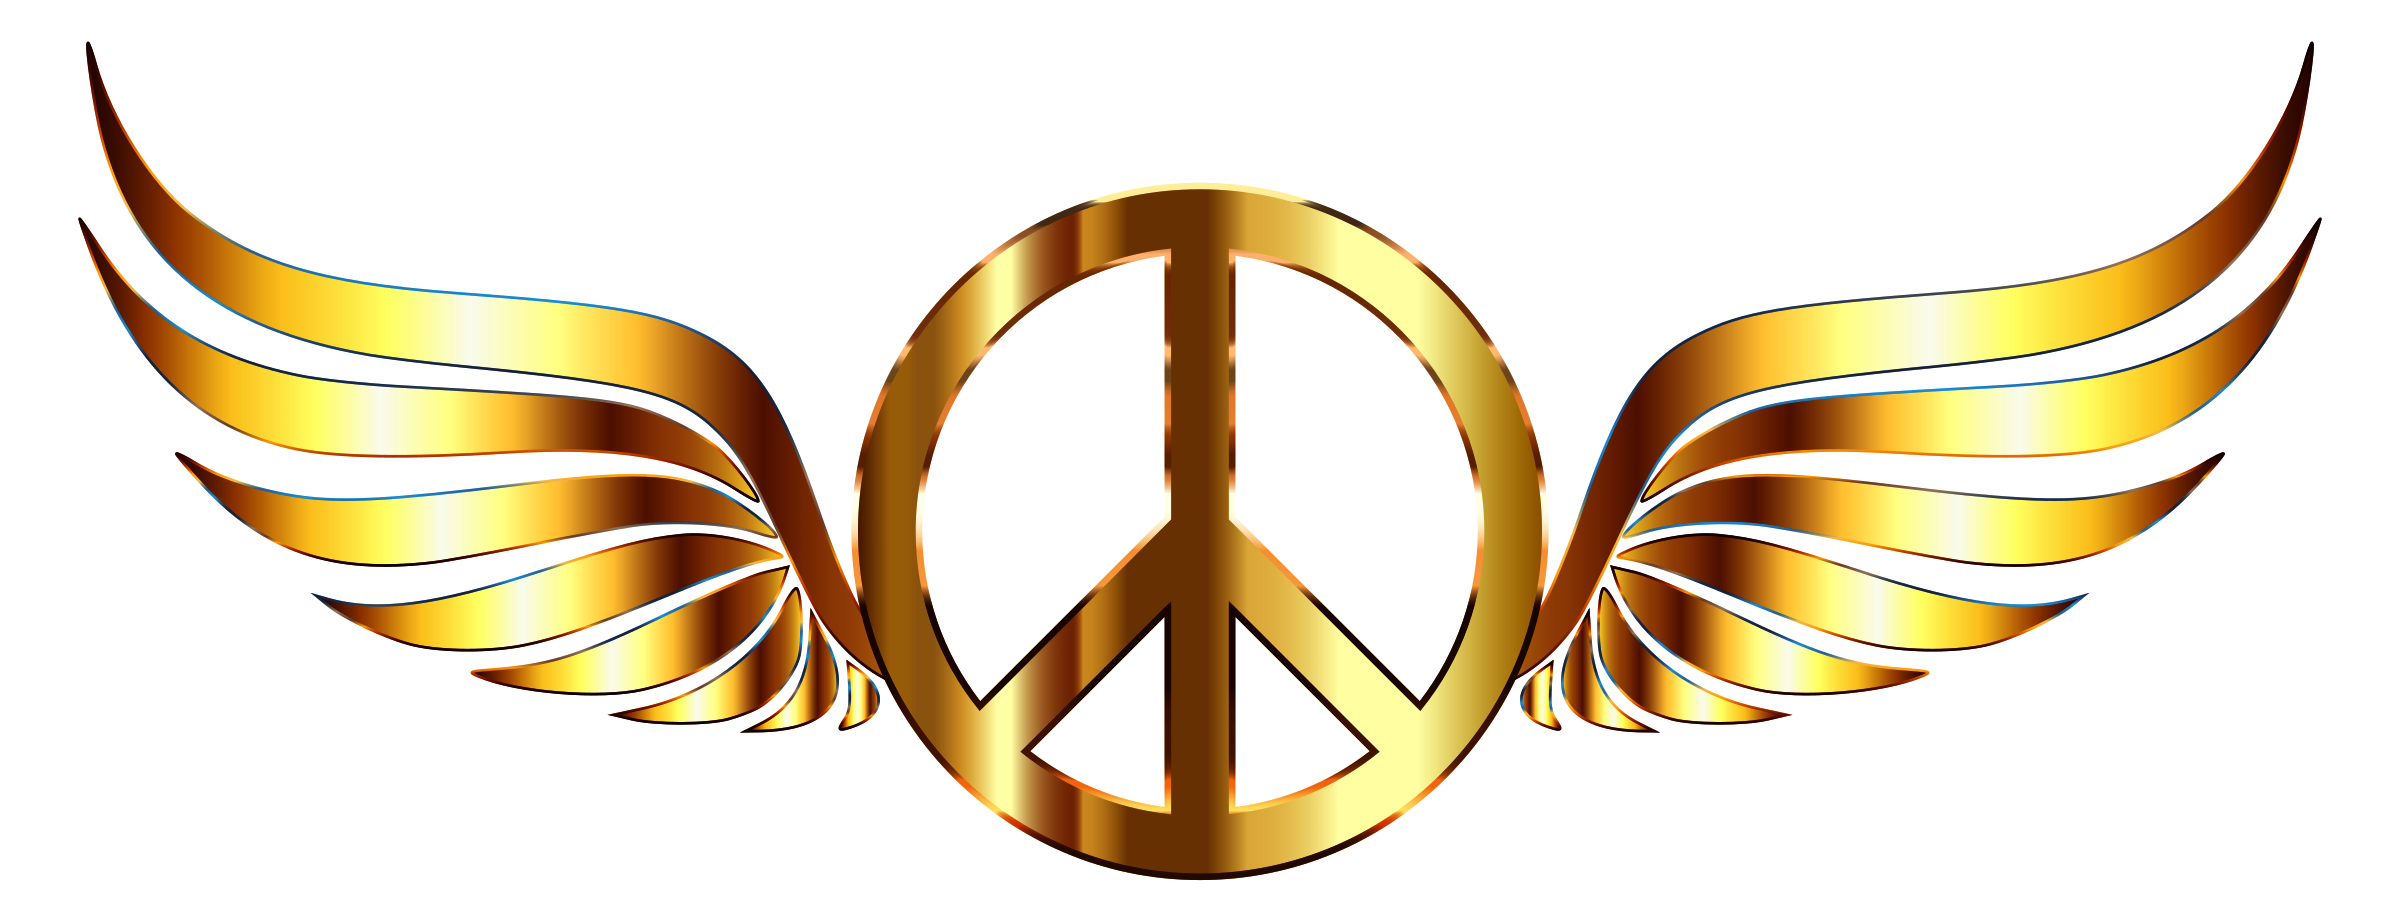 Gold Peace Sign Wings Enhanced Contrast No Background by GDJ